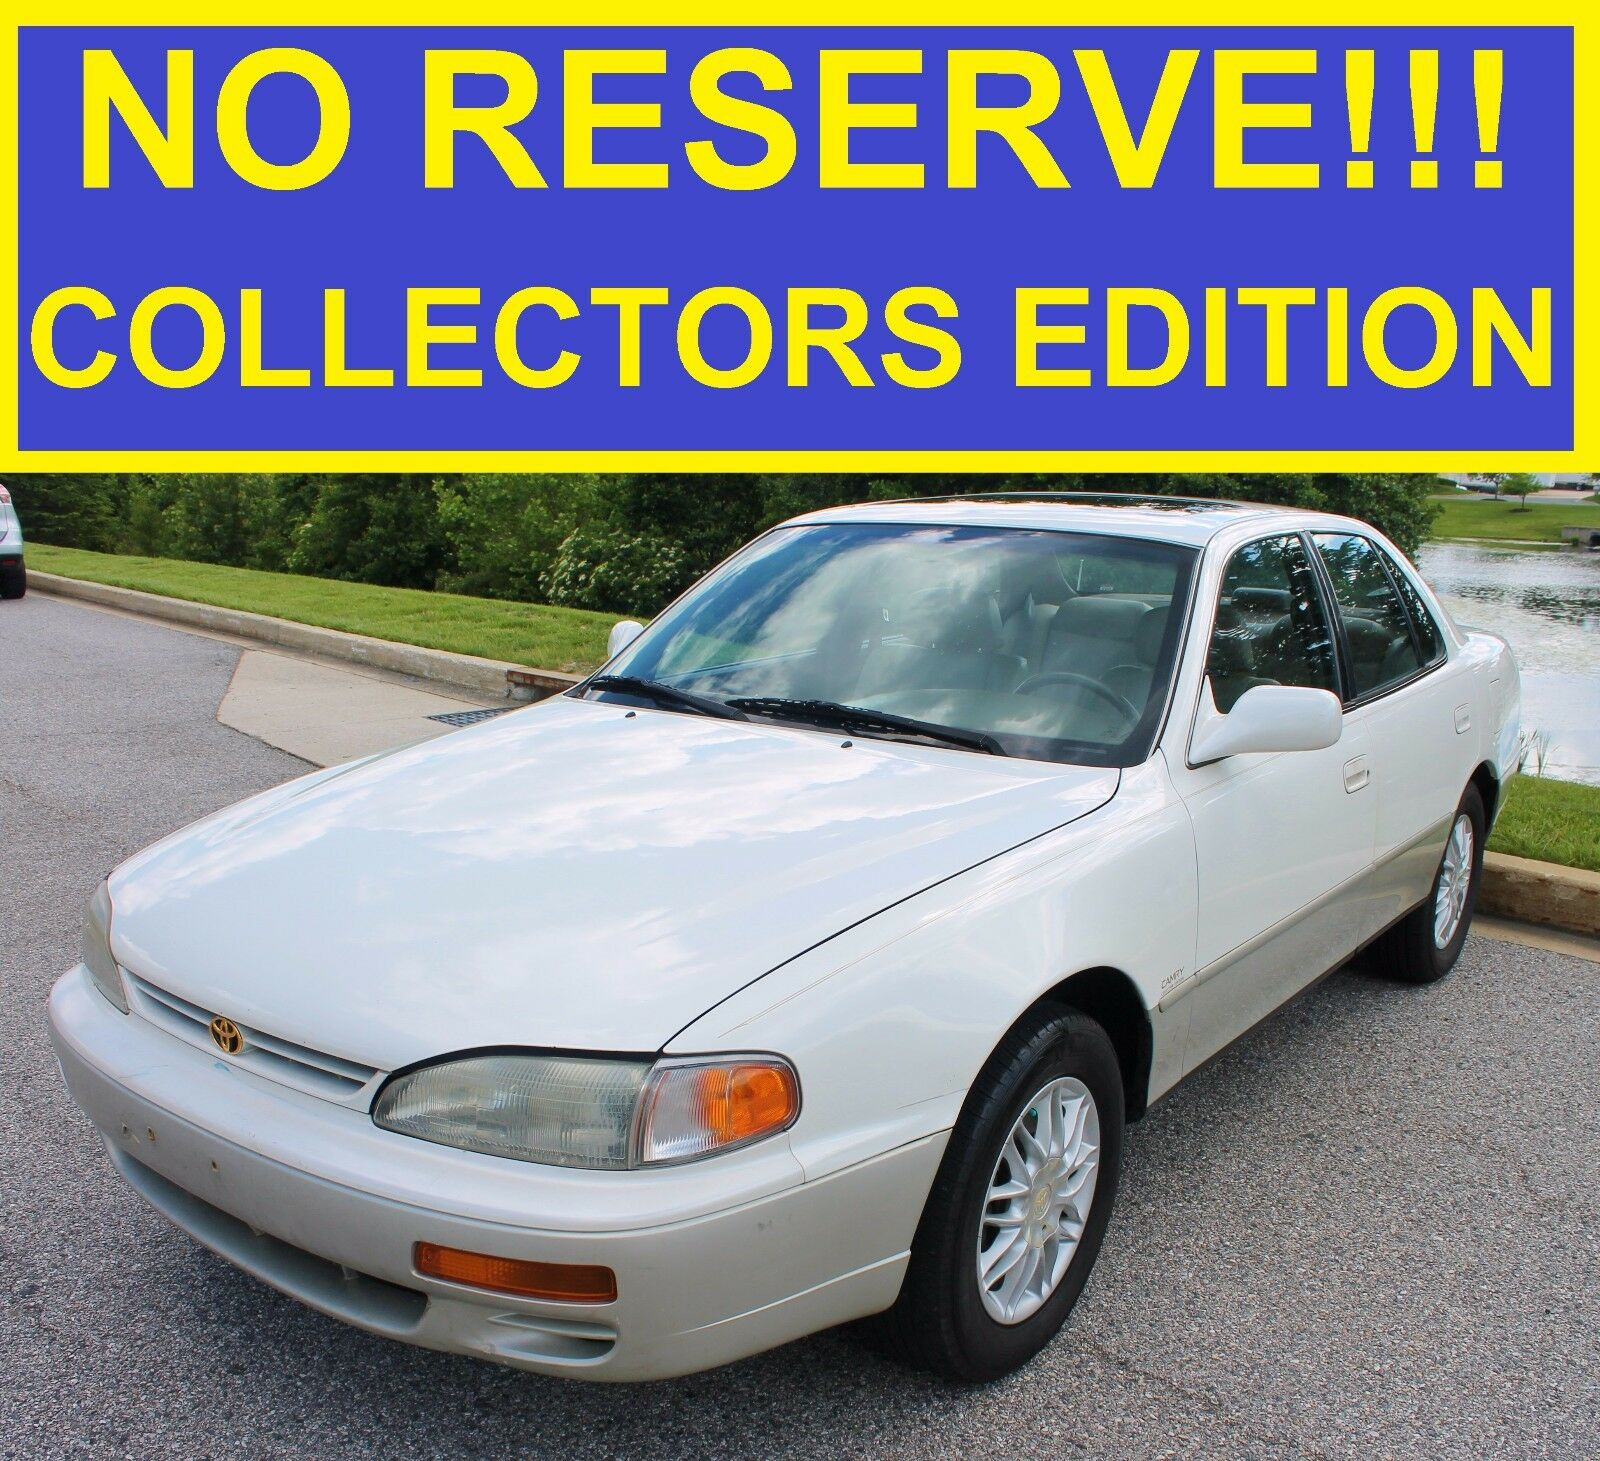 2000 Toyota Corolla For Sale: 1996 Toyota Camry Le Collector Edition!! 3.0 V6!! 97 98 99